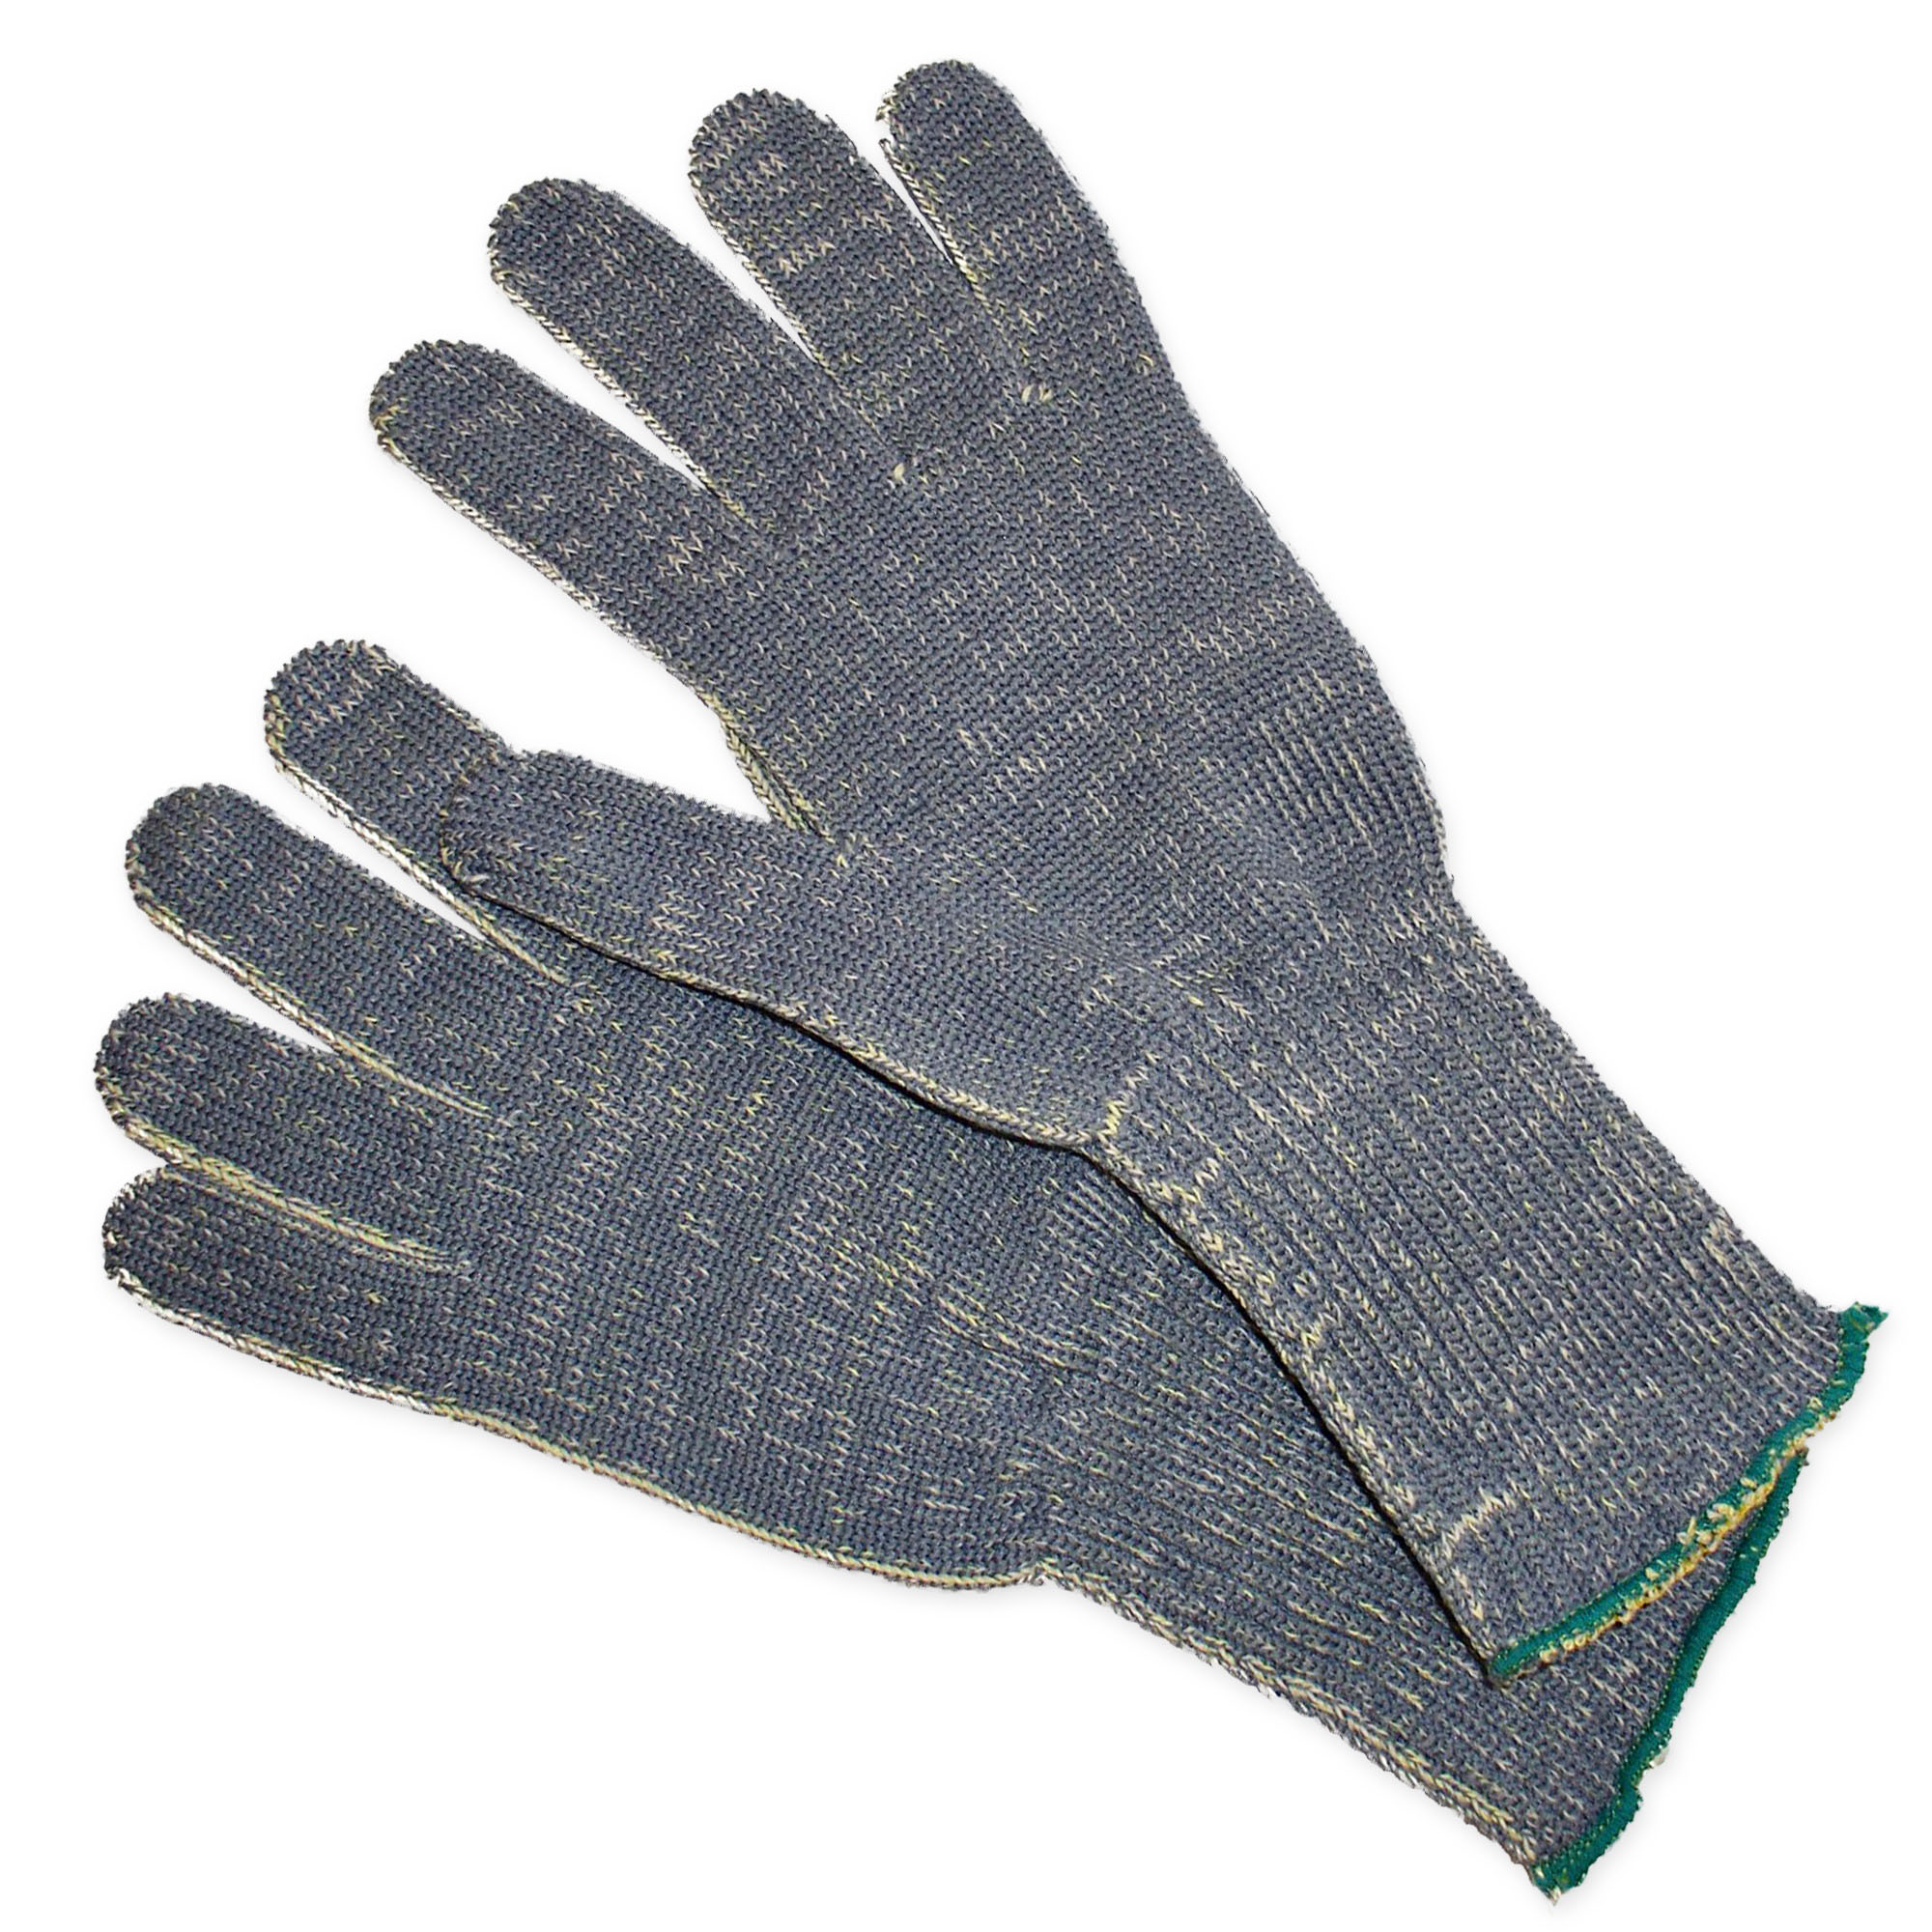 Heat Protective Gloves Image